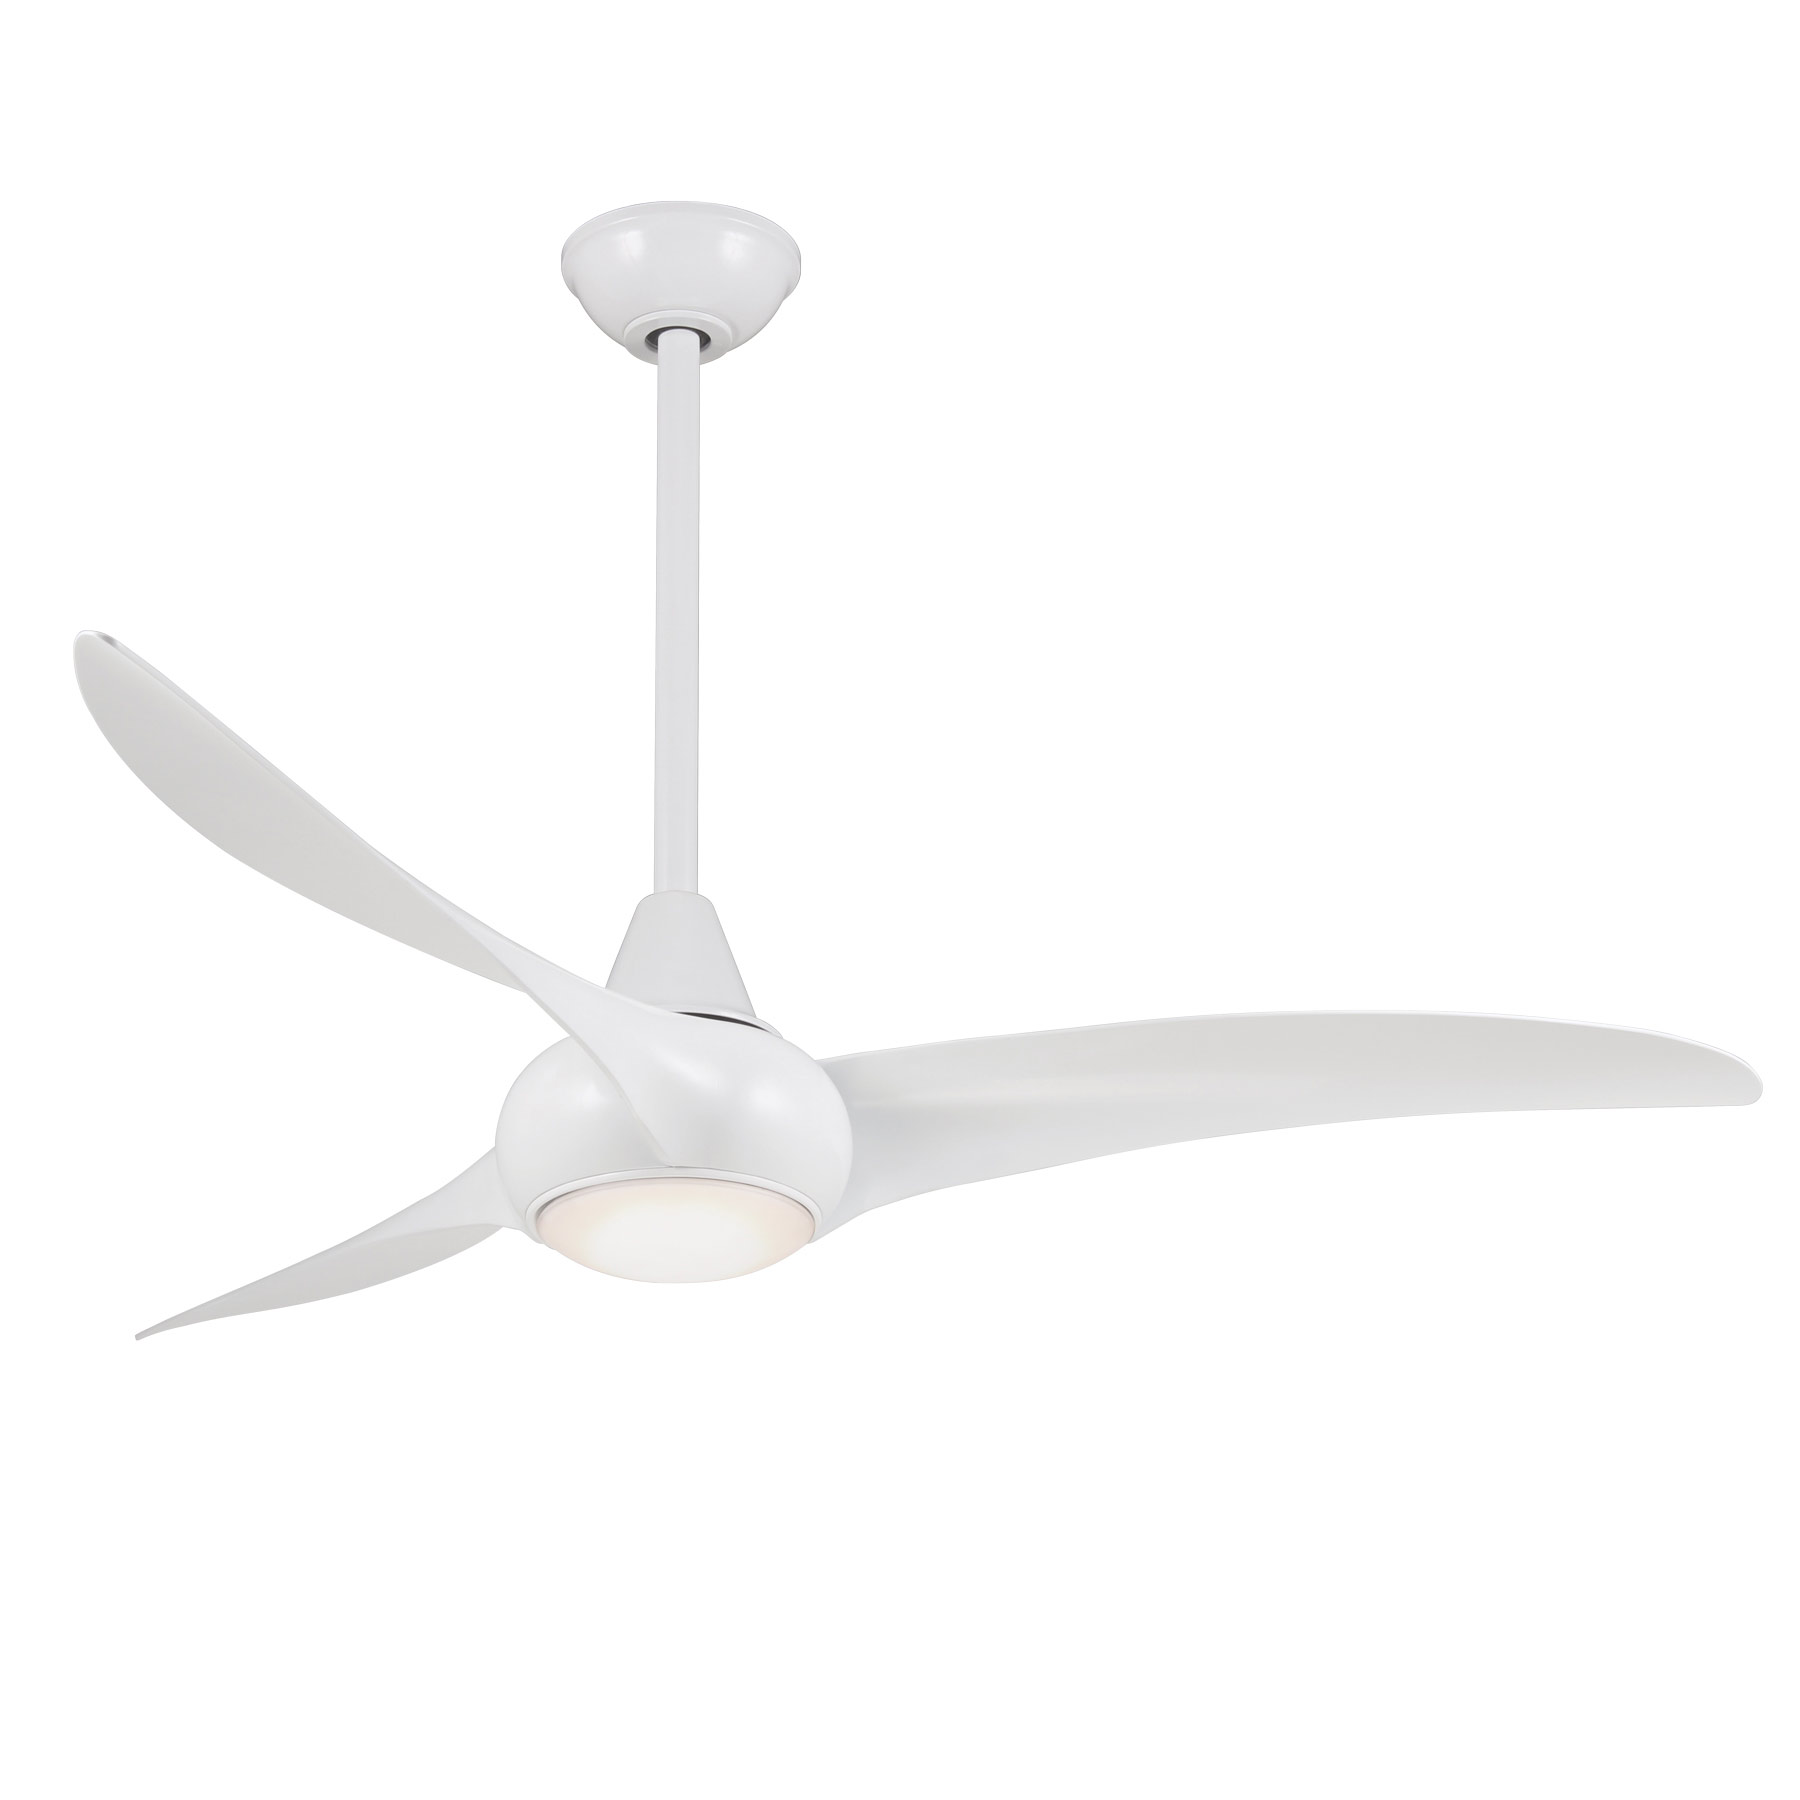 Wave led ceiling fan by minka aire f844 wh light wave led ceiling fan by minka aire f844 wh mozeypictures